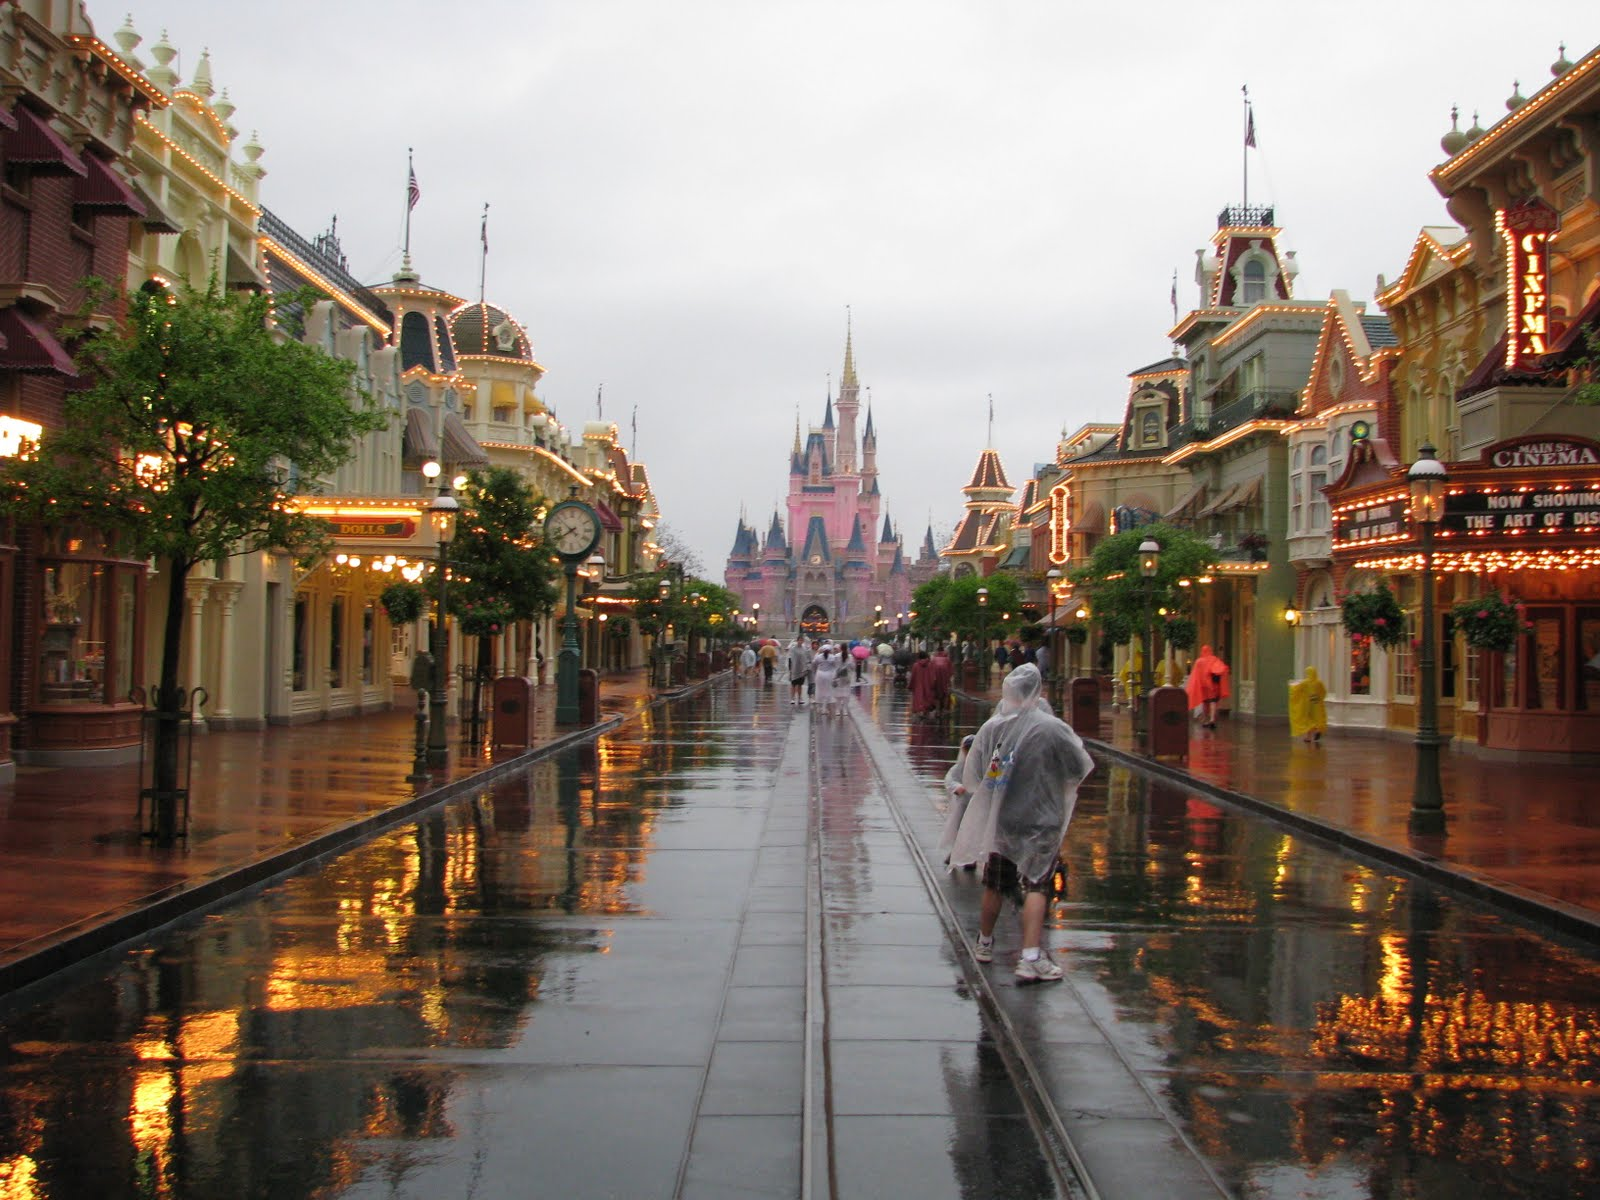 A Rainy Day At Disney World Means A Great Day To Visit The